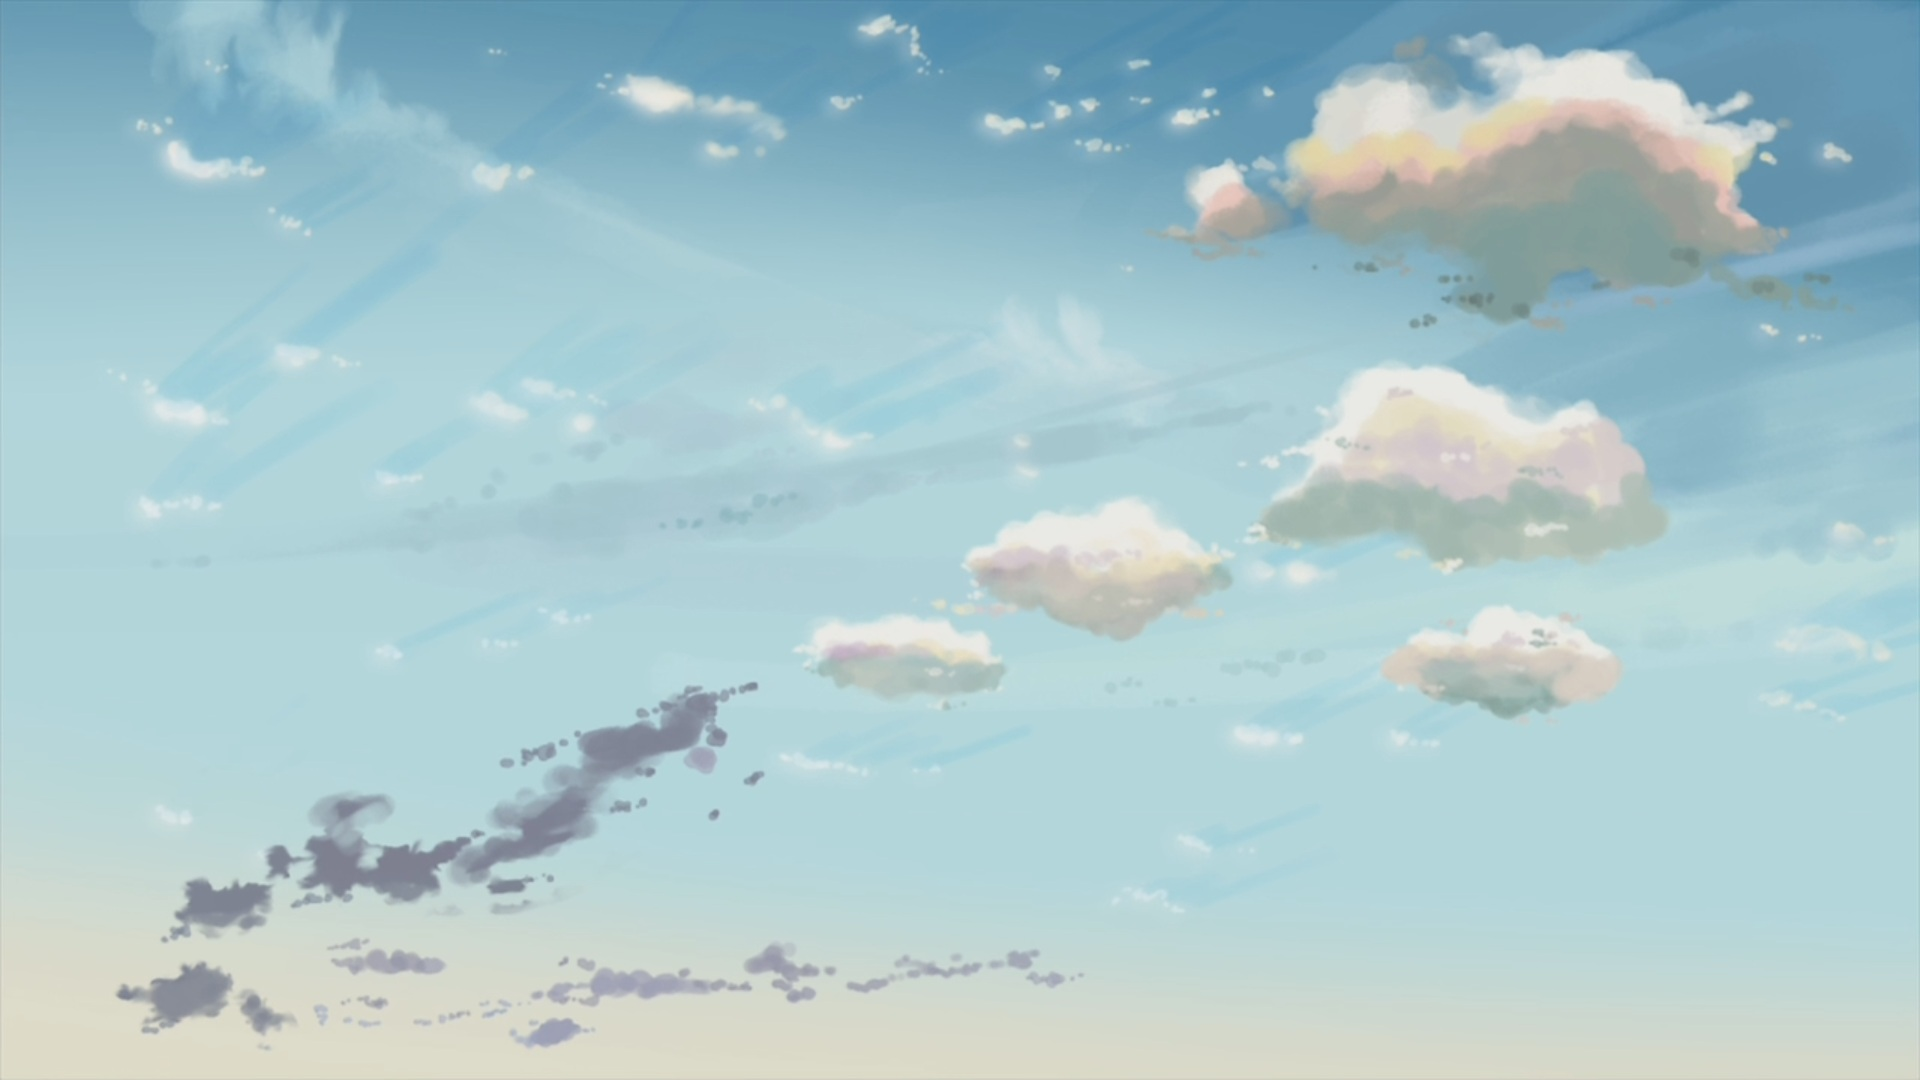 Anime Background Scenery Download HD Wallpapers 1920x1080